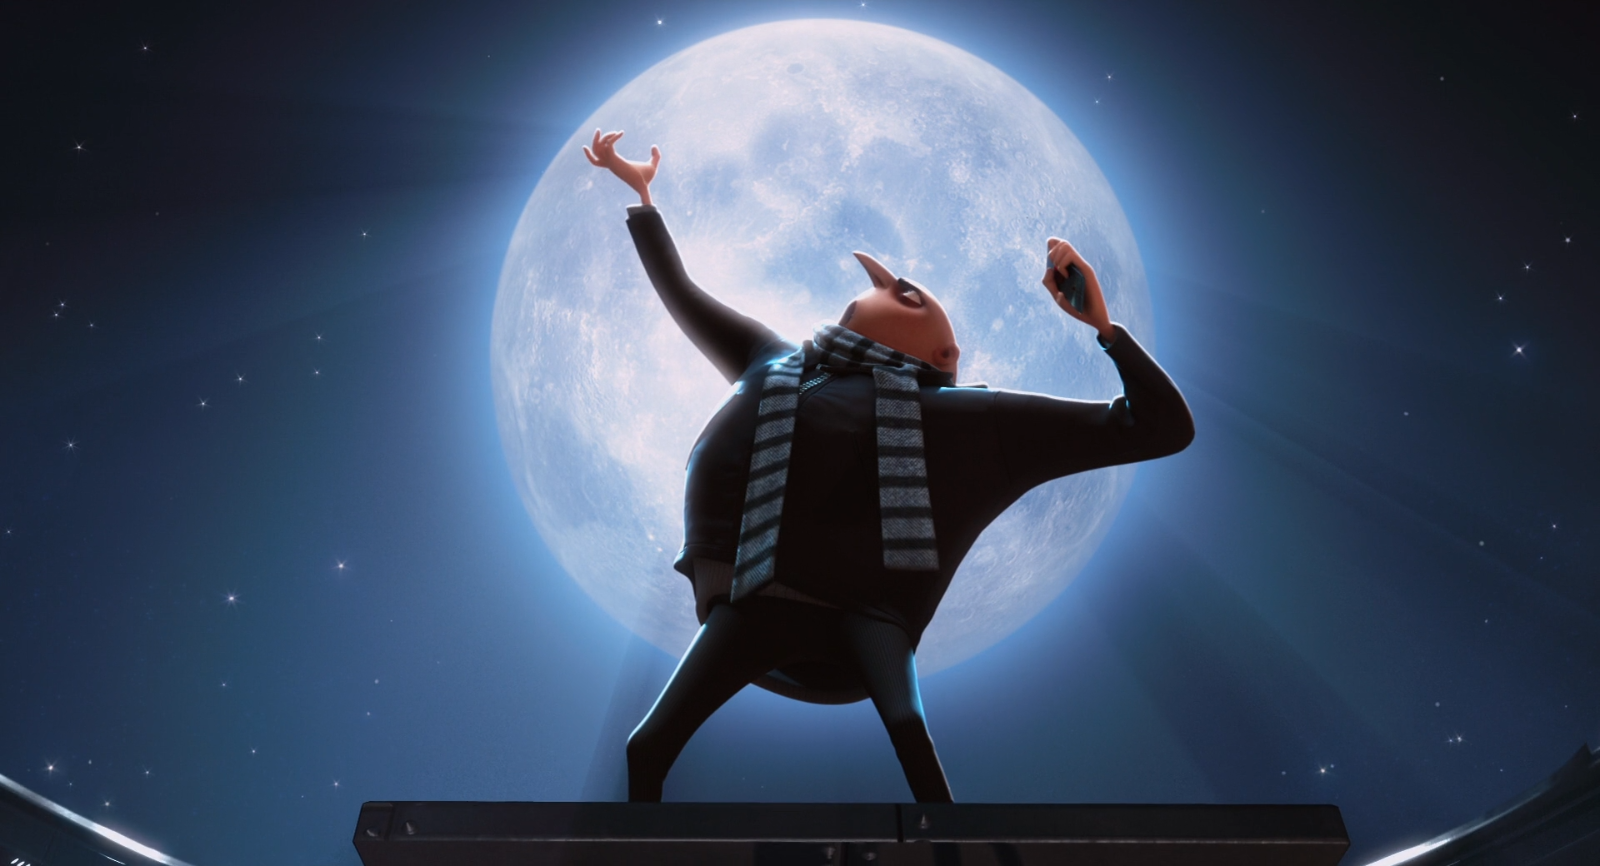 Image currently unavailable. Go to www.generator.doeshack.com and choose Despicable Me: Minion Rush image, you will be redirect to Despicable Me: Minion Rush Generator site.